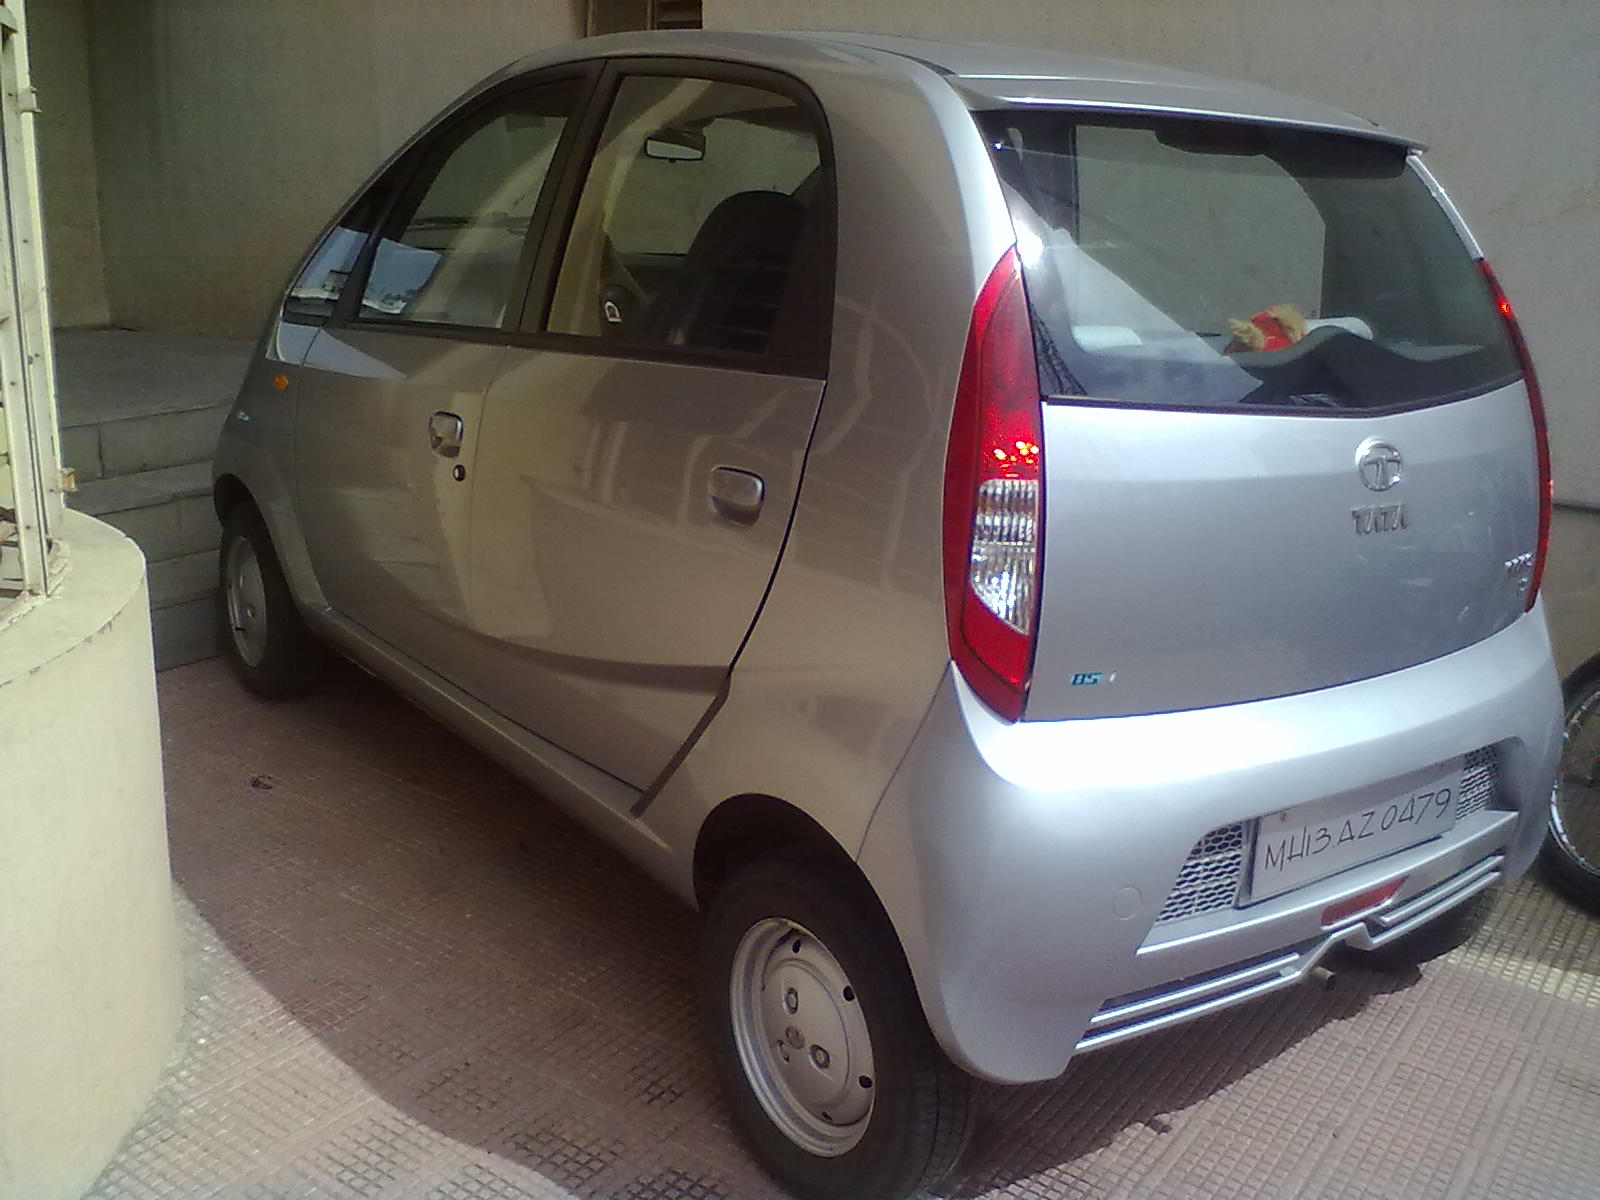 tata nano pricing strategy Tata nano price in india starts at ₹ 236 lakh nano comes with petrol, cng and automatic variant(s) read nano review from experts, view mileage, pictures (interiors), colors, specifications, on-road and ex-showroom price, variants details.